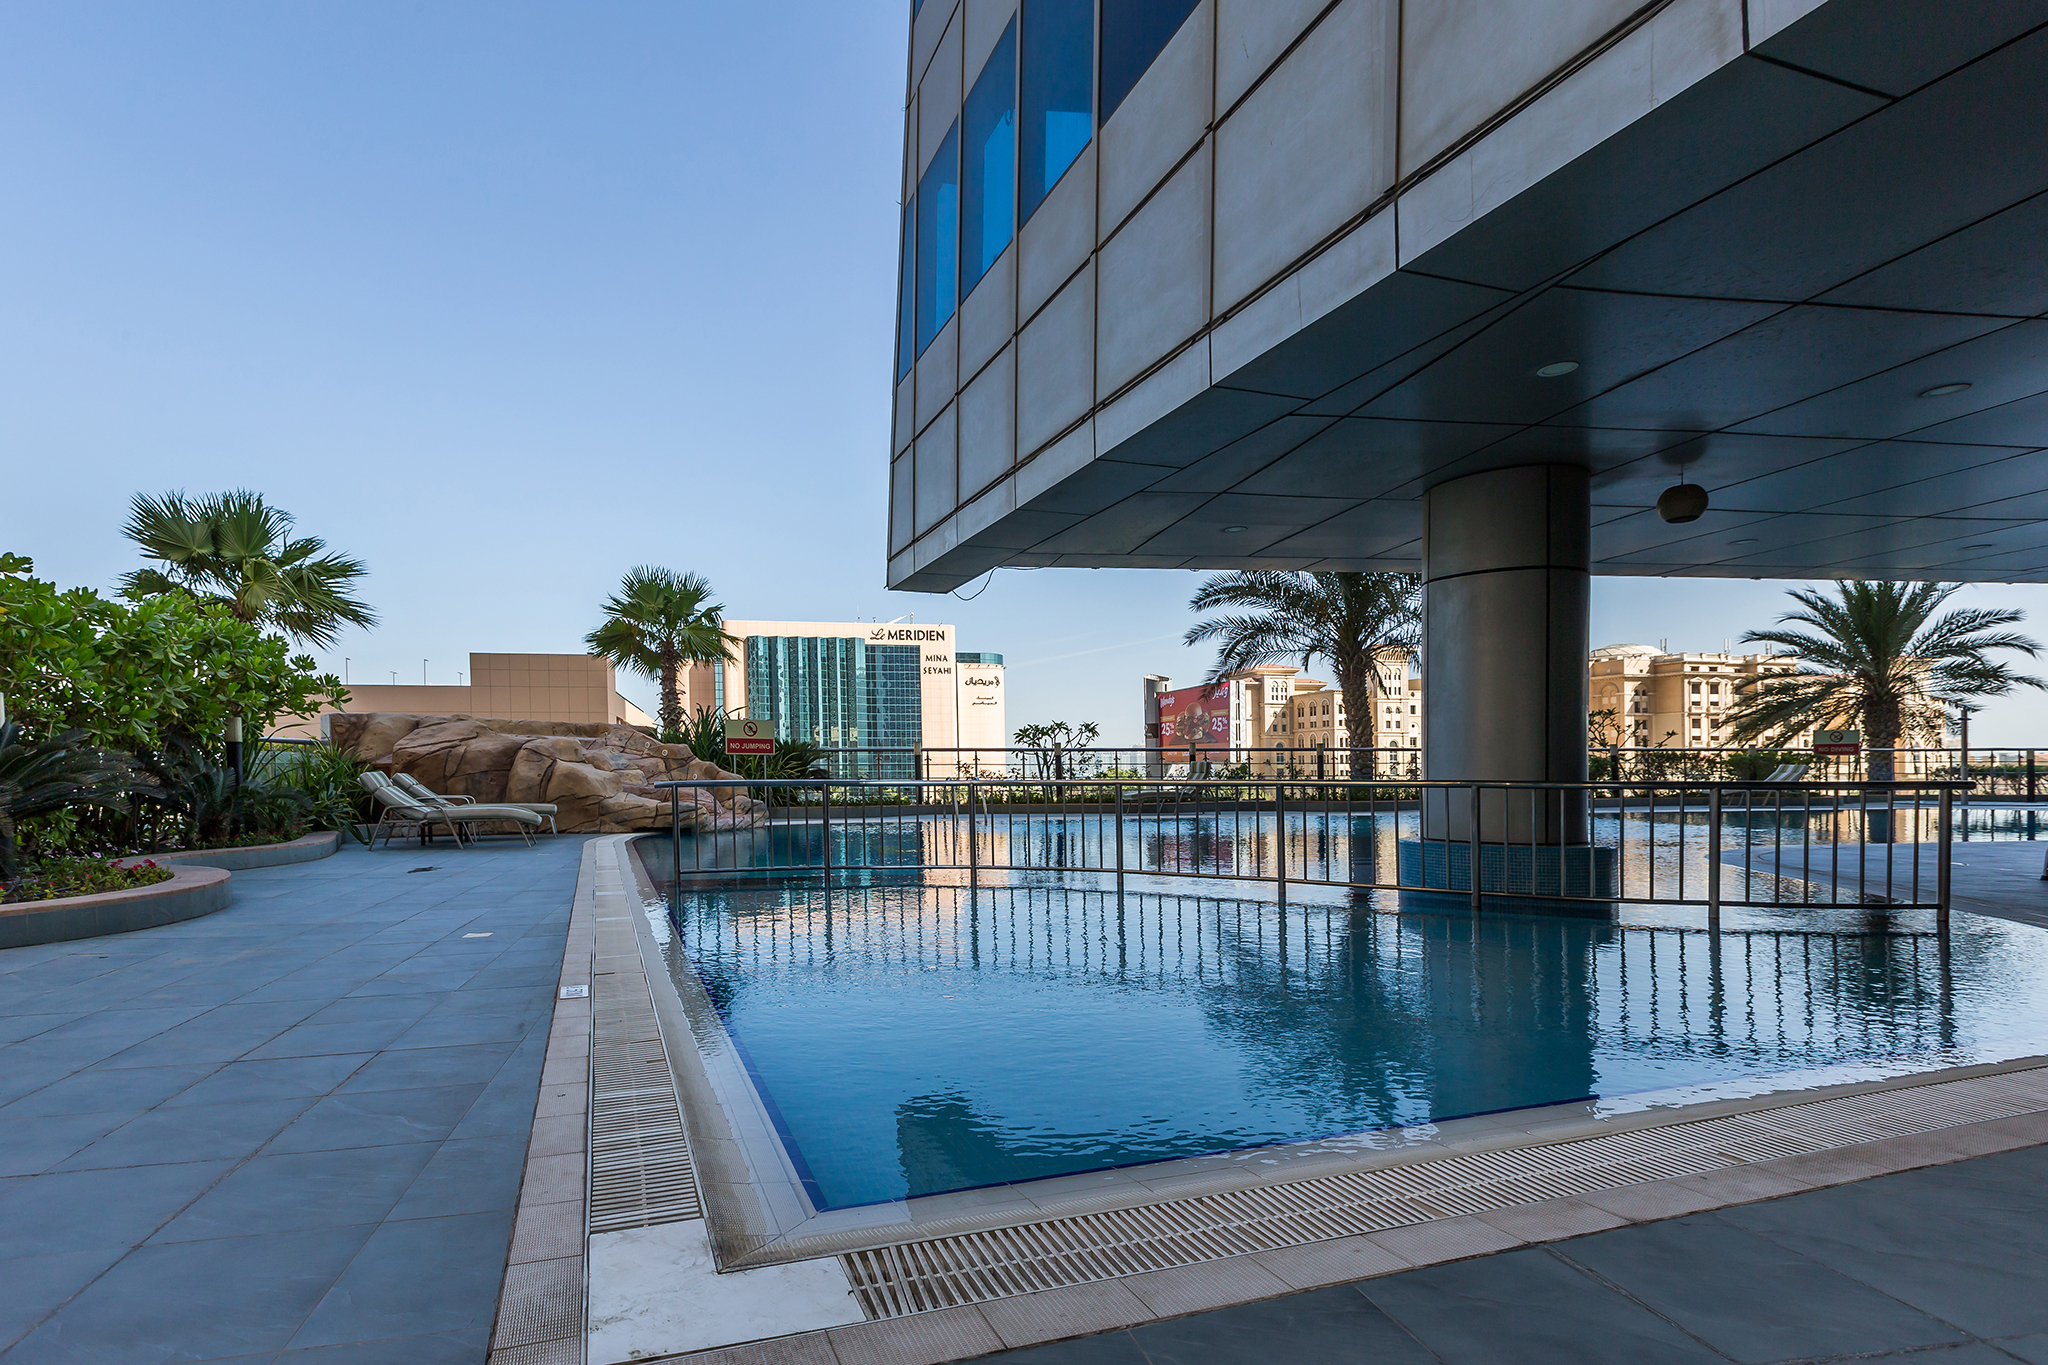 The temperature controlled pool is the perfect setting for watching the sunset beautifully over Dubai Marina